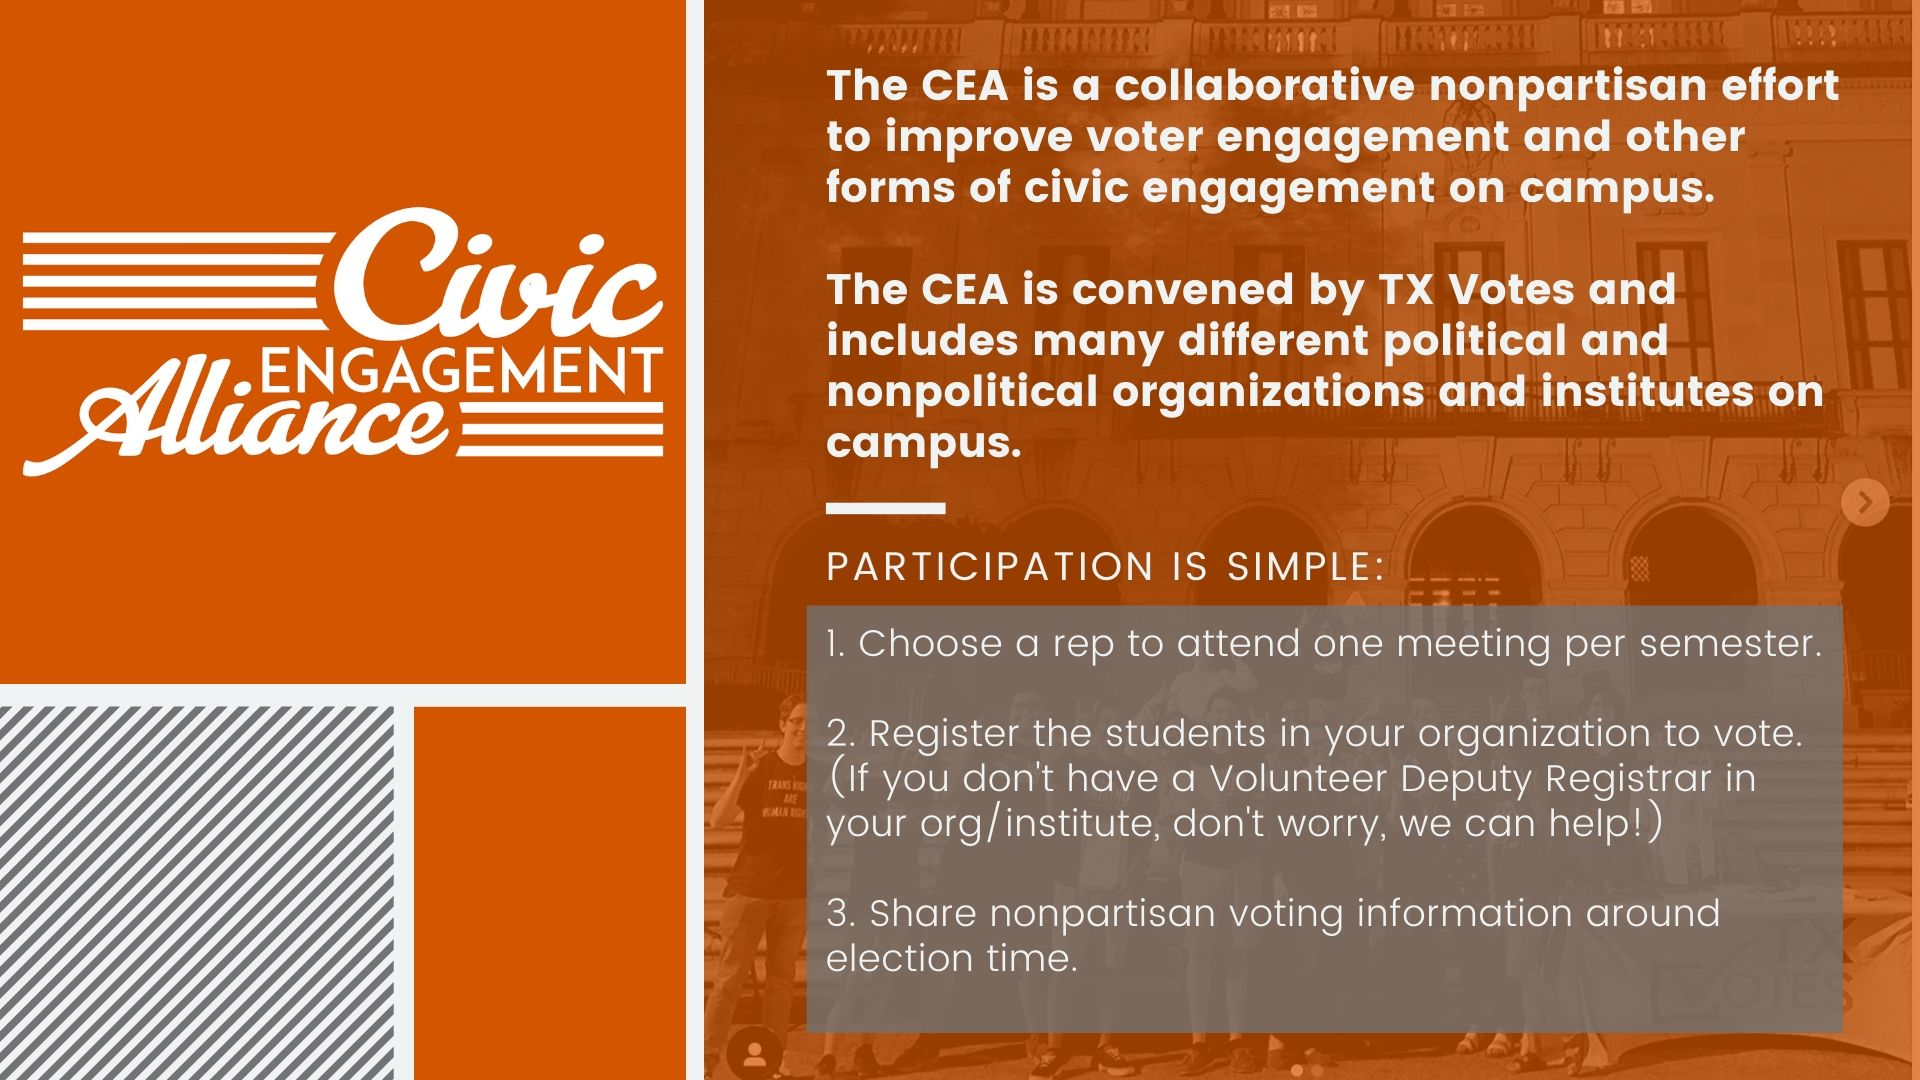 The CEA is a collaborative nonpartisan effort to improve voter engagement and other forms of civic engagement on campus.   The CEA is convened by TX Votes and includes many different political and nonpolitical organizations and institutes on campus.